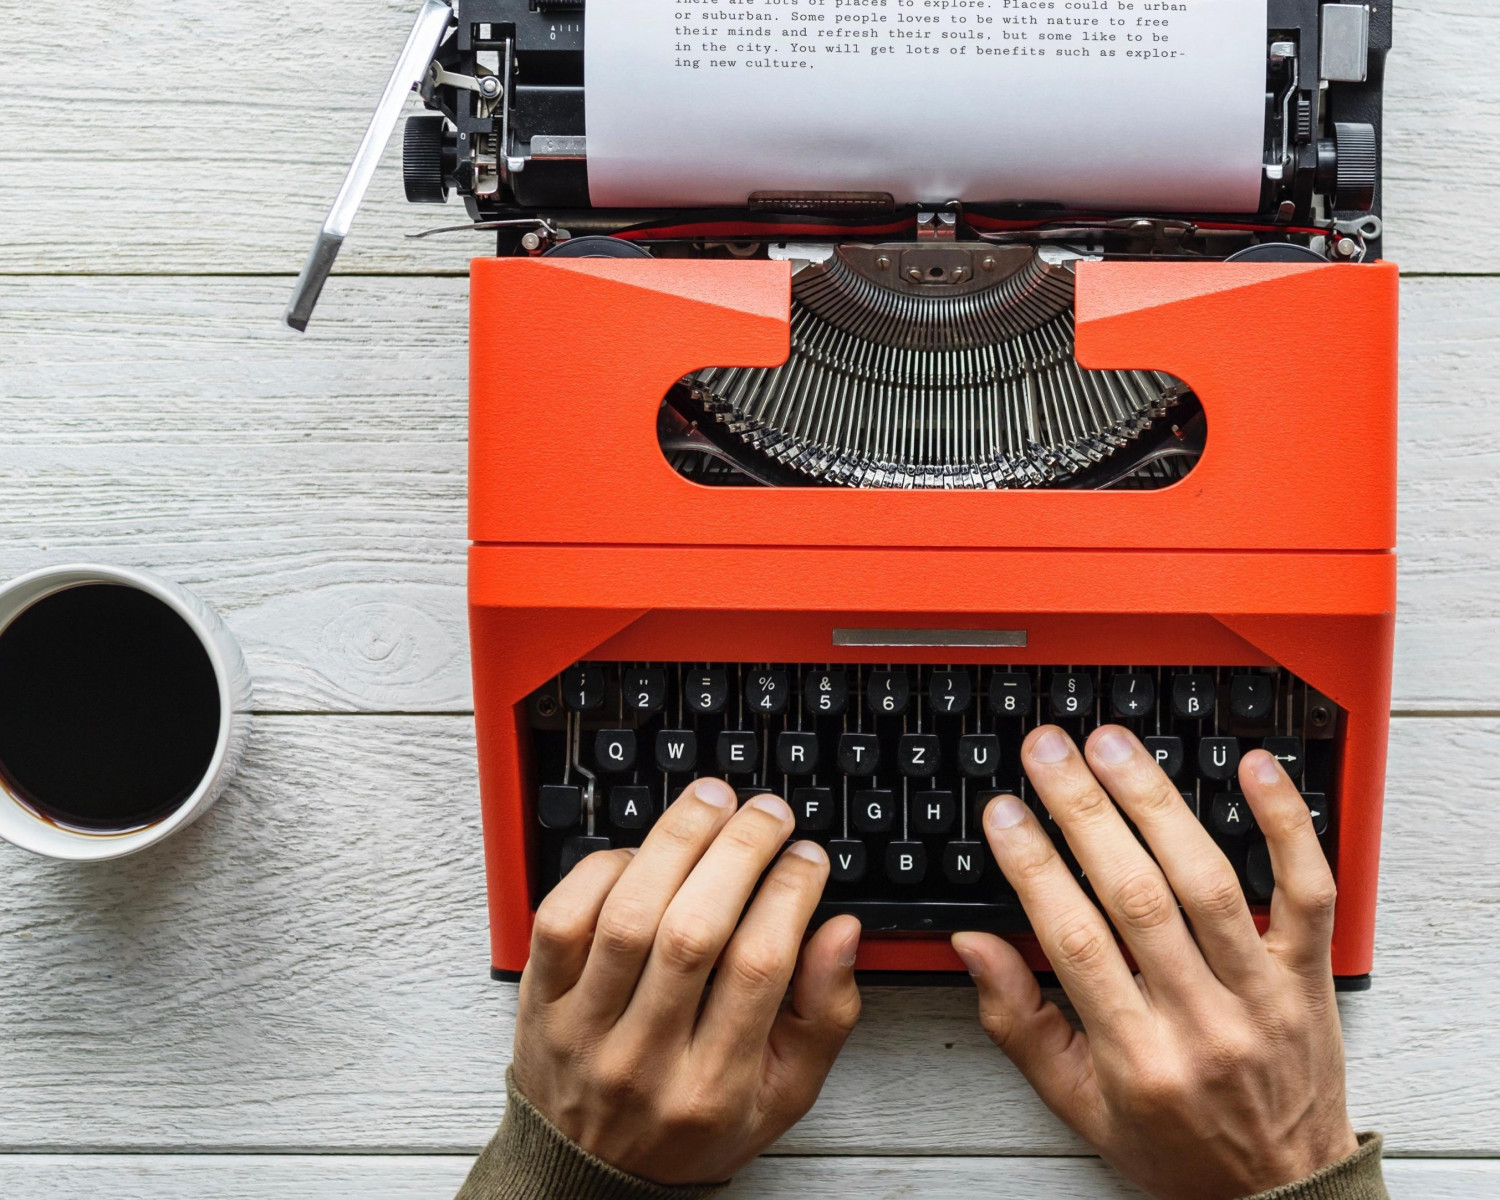 Does Copywriting Qualify To Be A Career Choice?